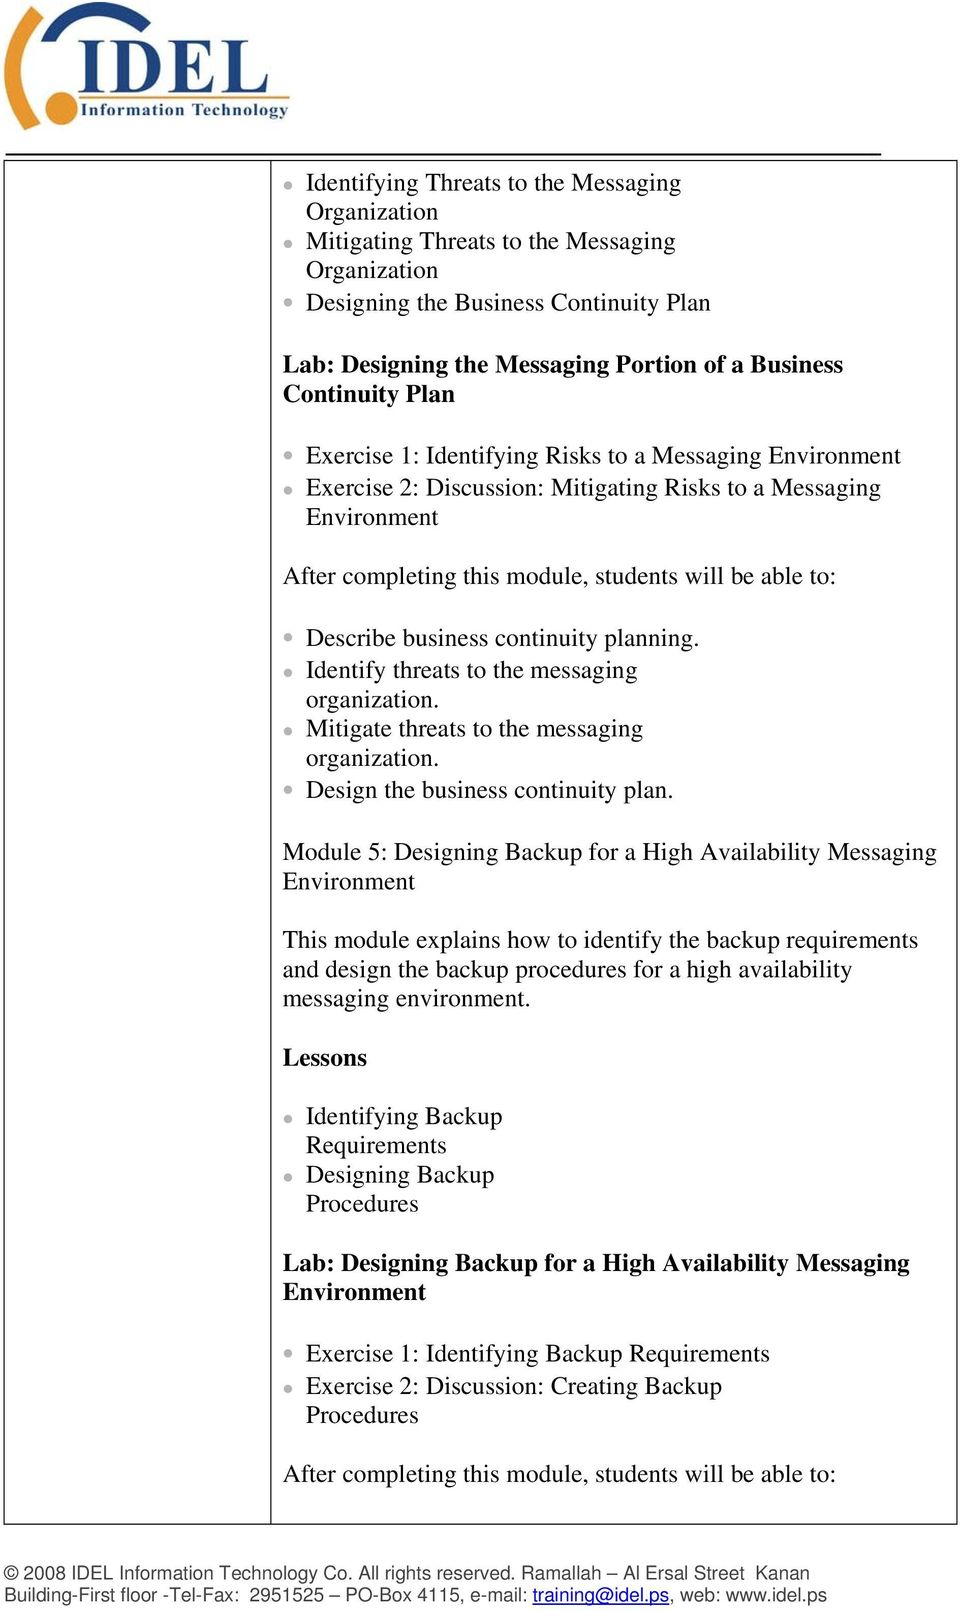 Mitigate threats to the messaging organization. Design the business continuity plan.